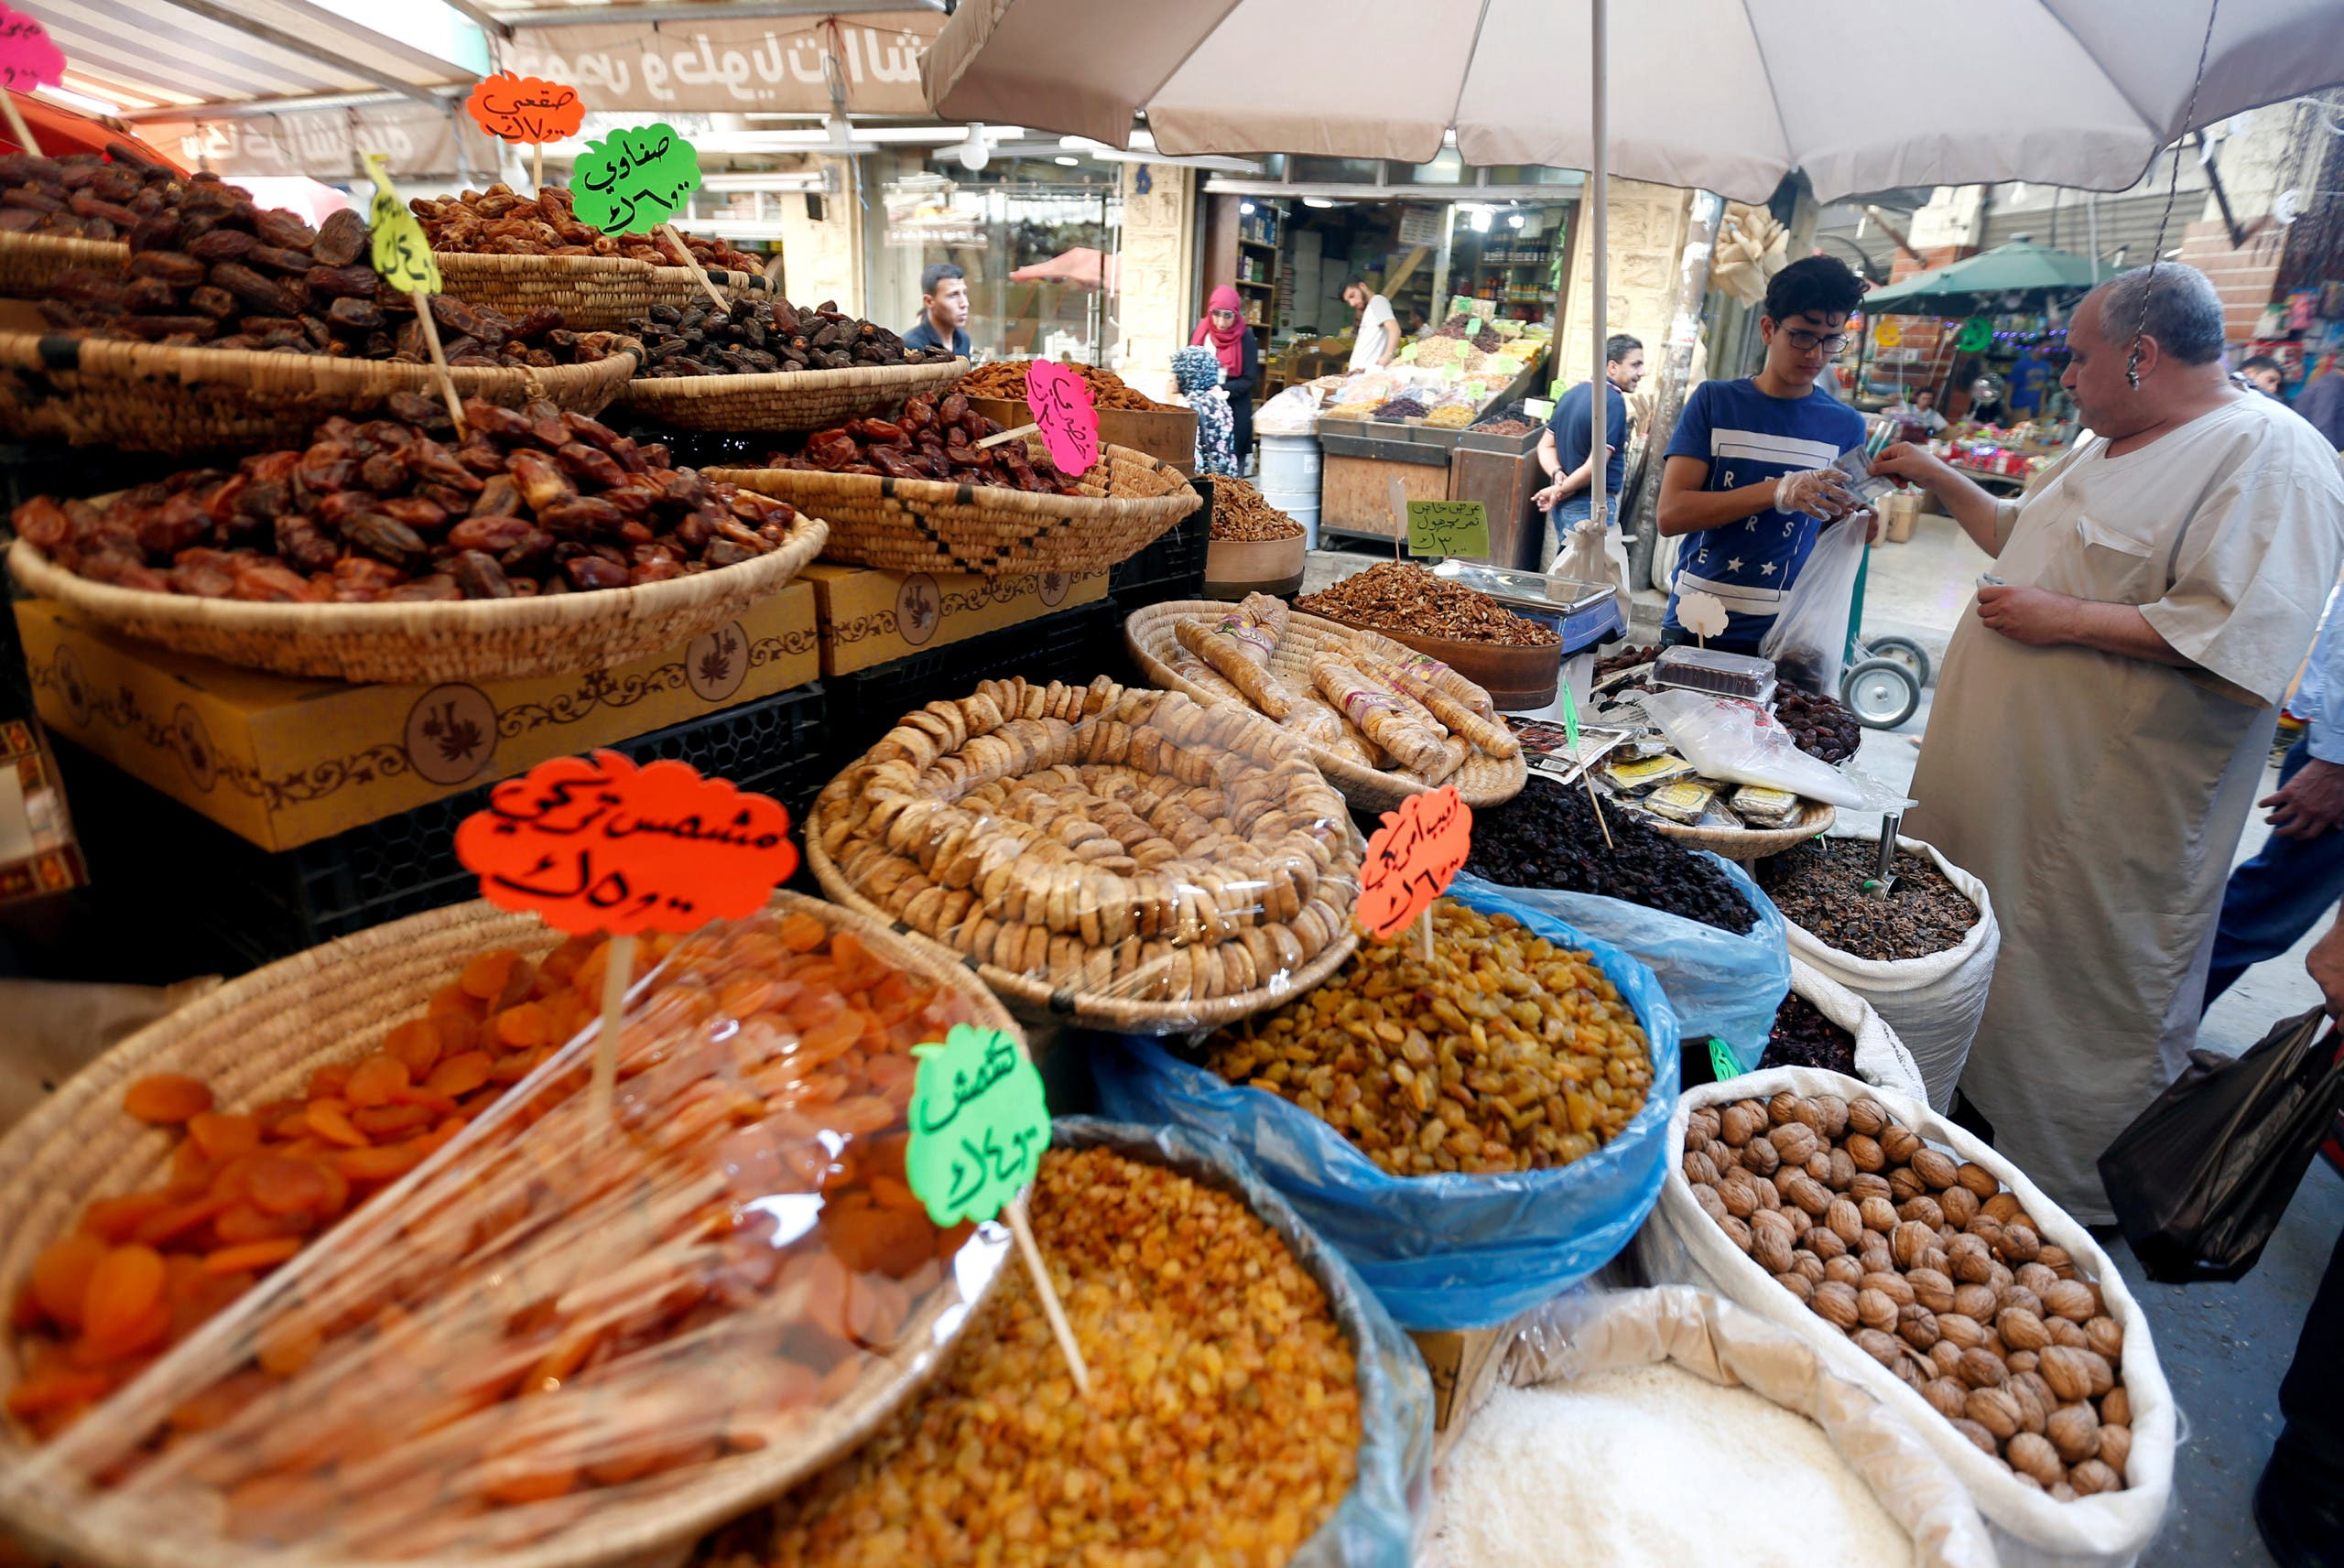 Muslim people buy dates for Iftar during the holy month of Ramadan at a market area in Amman. (File photo: Reuters)